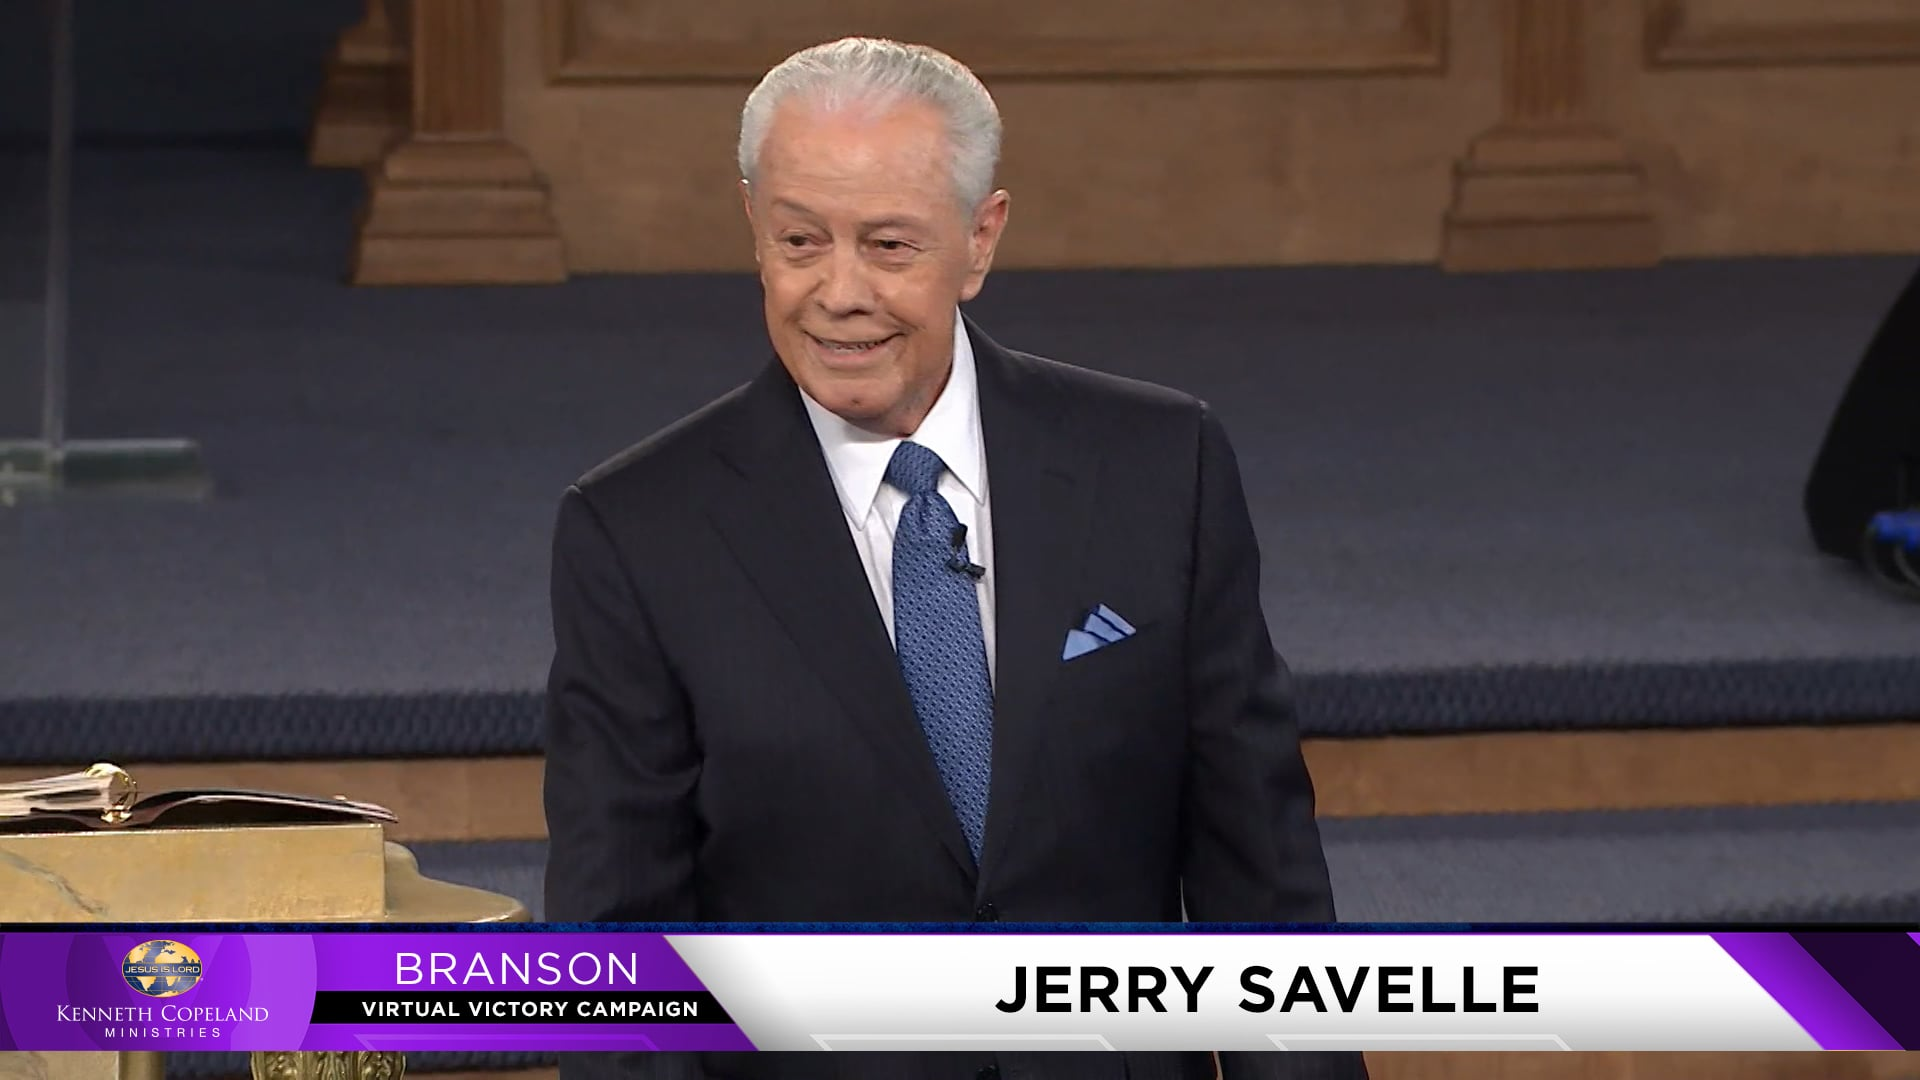 """At the 2021 Branson Virtual Victory Campaign, Jerry Savelle shares the key to supernatural increase; consistent sowing. Are you looking for a raise in your income? Don't miss an opportunity to sow when an offering is taken. Gen. 8:22 says, """"While the earth remains, seedtime and harvest….shall not cease."""""""